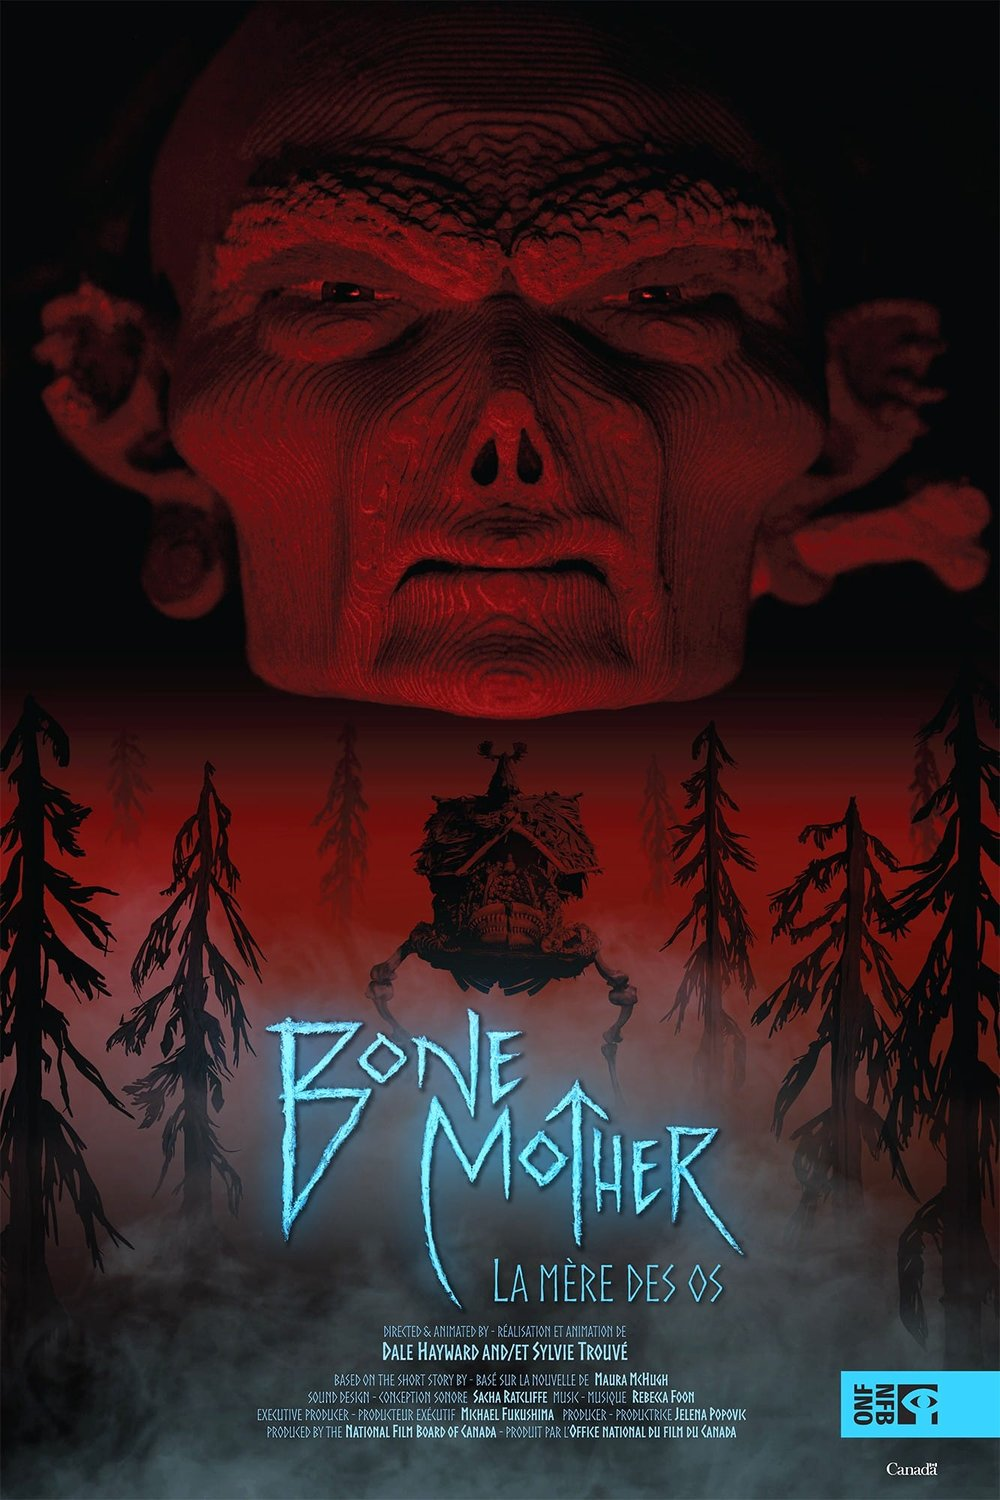 BONE MOTHER - 2018 | 8m | Action/Fantasy Animated ShortBone Mother is a fantasy-horror-stop-motion animation adaptation of the novel of the same name by Maura Mchugh. The ancient crone Baba Yaga is desperately caring for her ailing living house of bones and unexpectedly becomes the mother of a legend.Directed by Dale Hayward and Sylvie Trouvé.Produced by Jelena Popovic, The National Film Board of Canada.